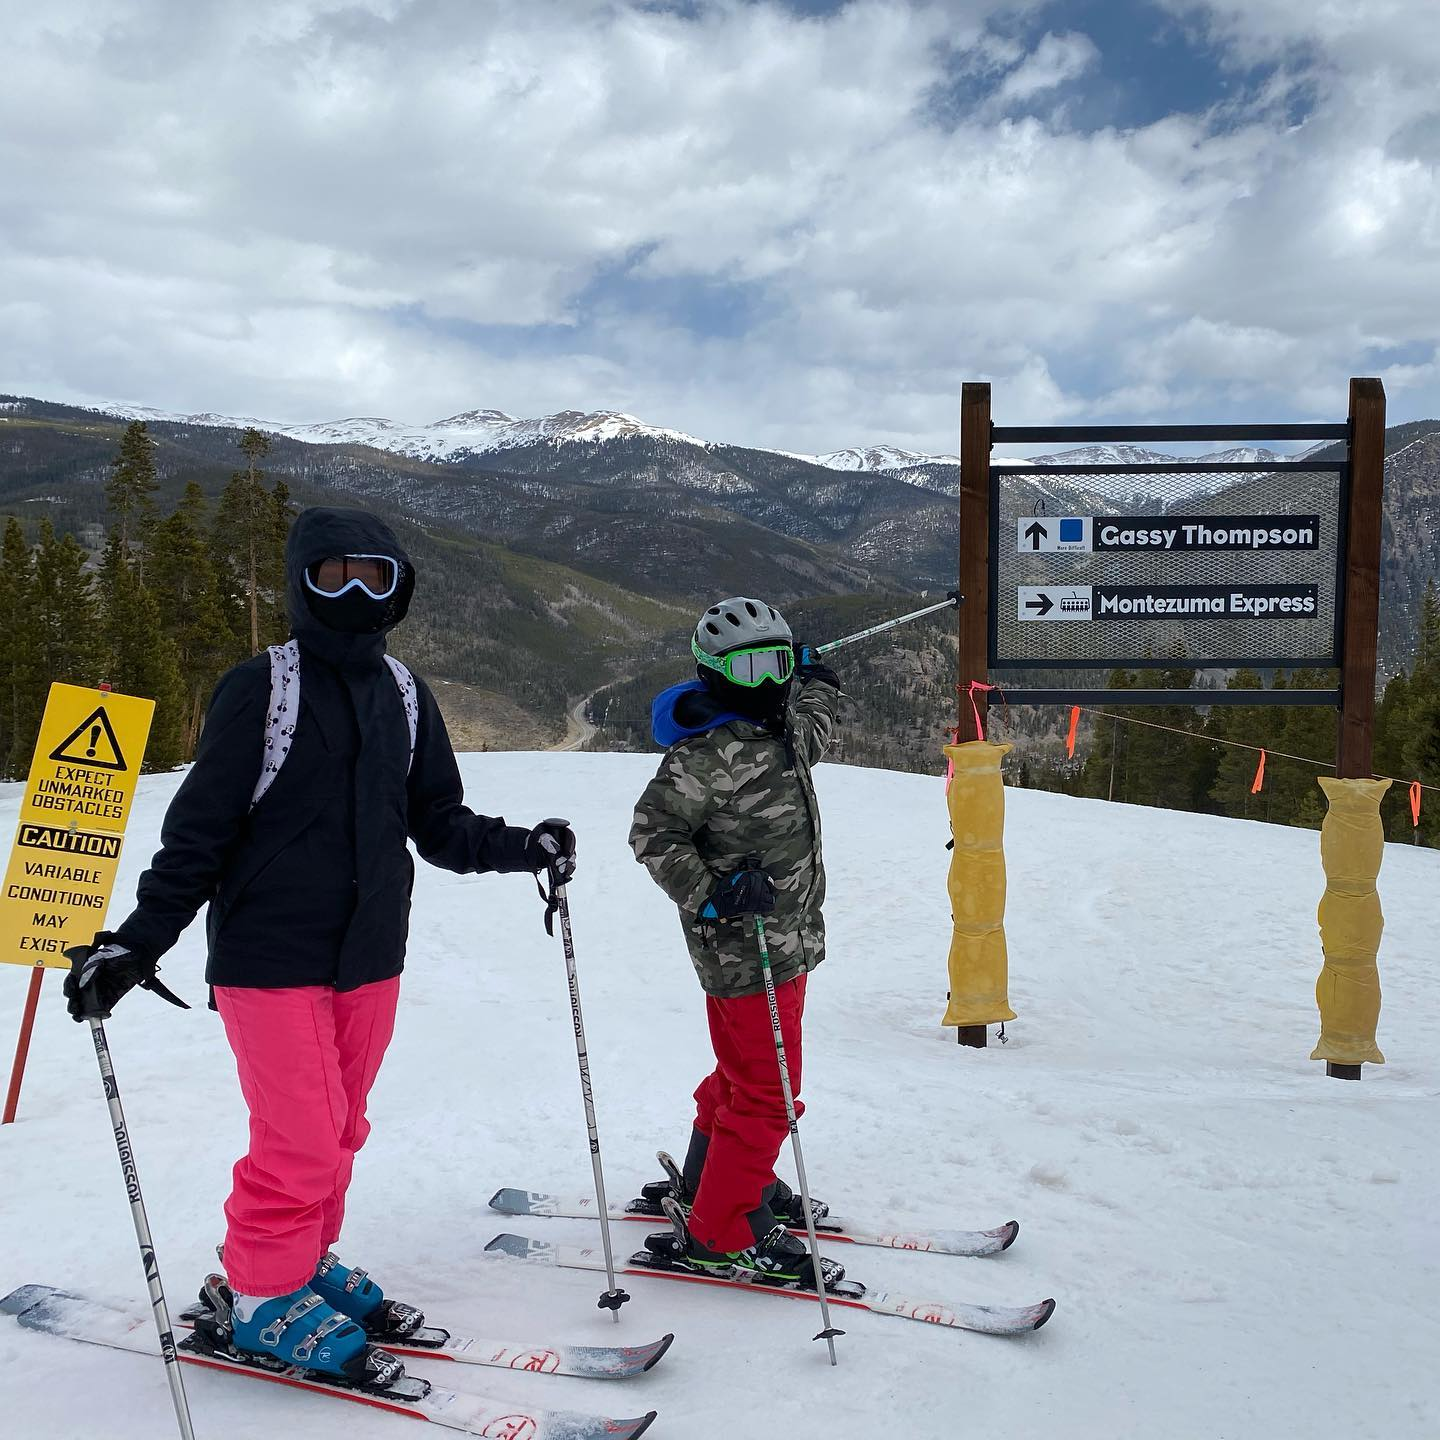 We found a slope with our last name! We attempted to go down it but found out it was full of moguls!! We took our skis off and walked back uphill to go down a better route- what memories we had this ski season 2021! #familyfun #familyskitrip #gassythompson #keystone #keystoneresort